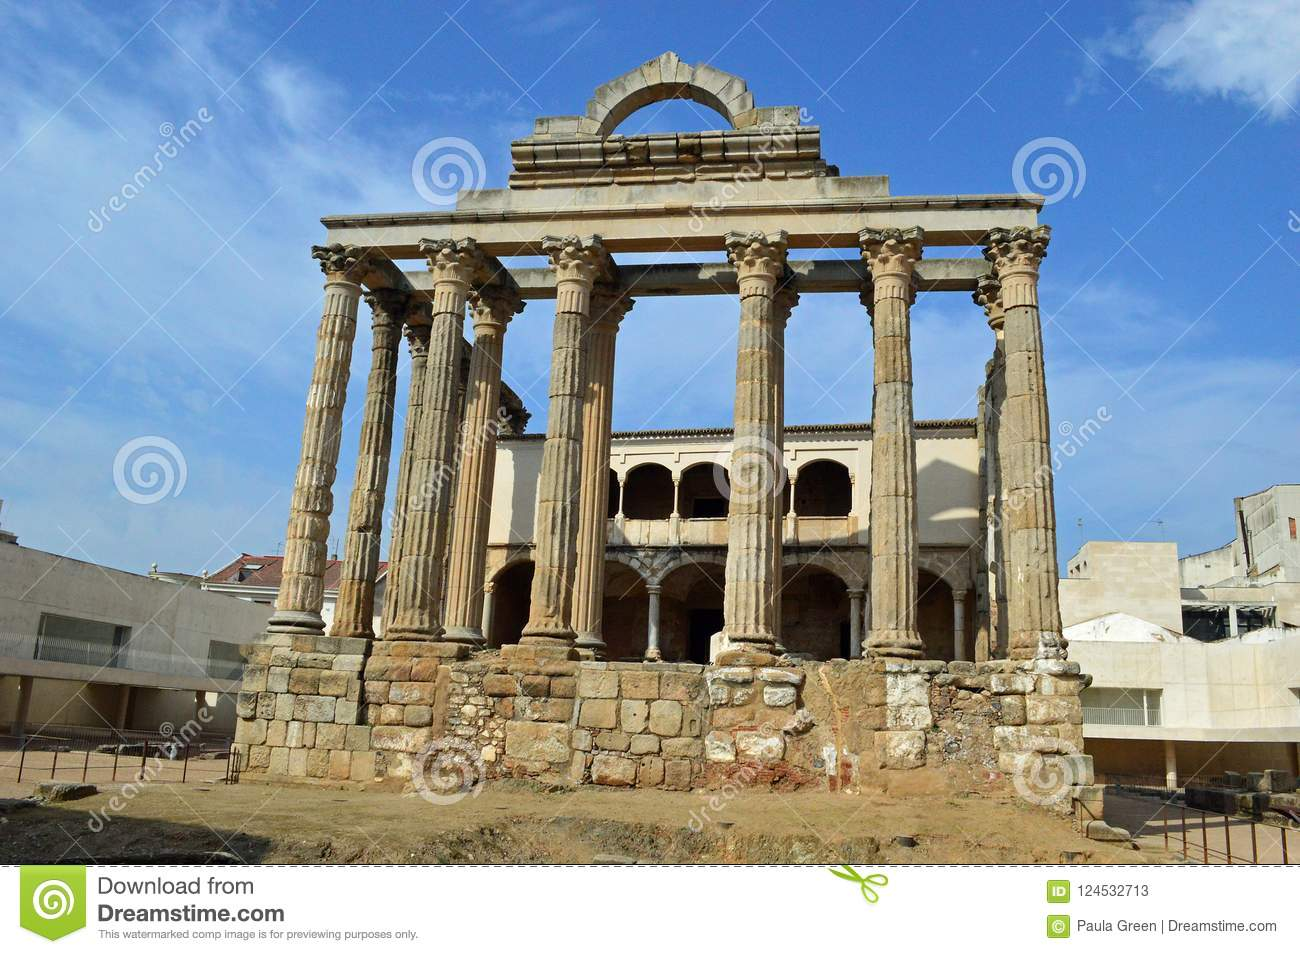 Temple of Diana, Merida Spain